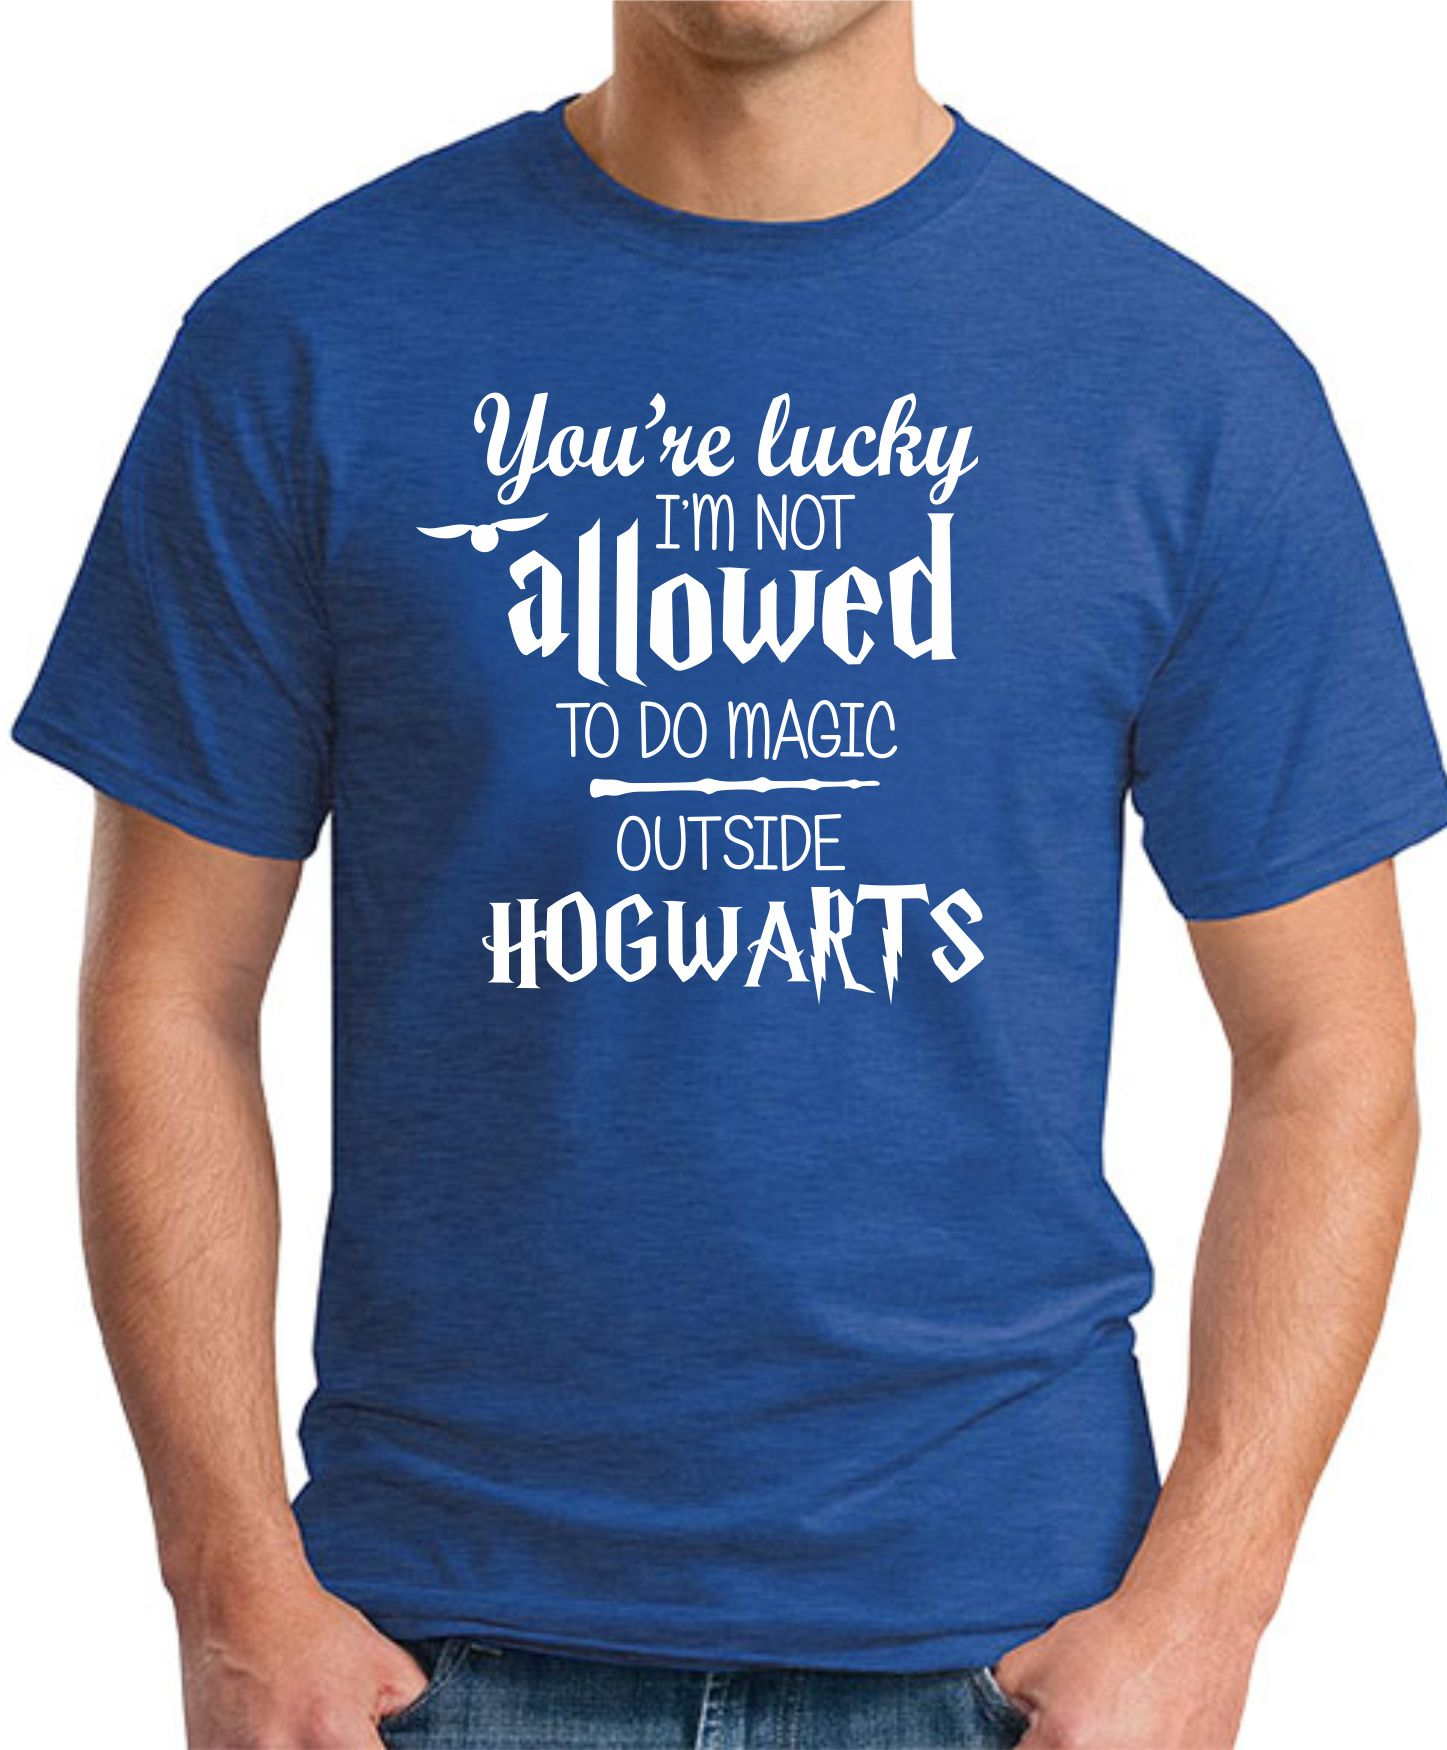 YOU'RE LUCKY I'M NOT ALLOWED TO DO MAGIC OUTSIDE HOGWARTS royal blue